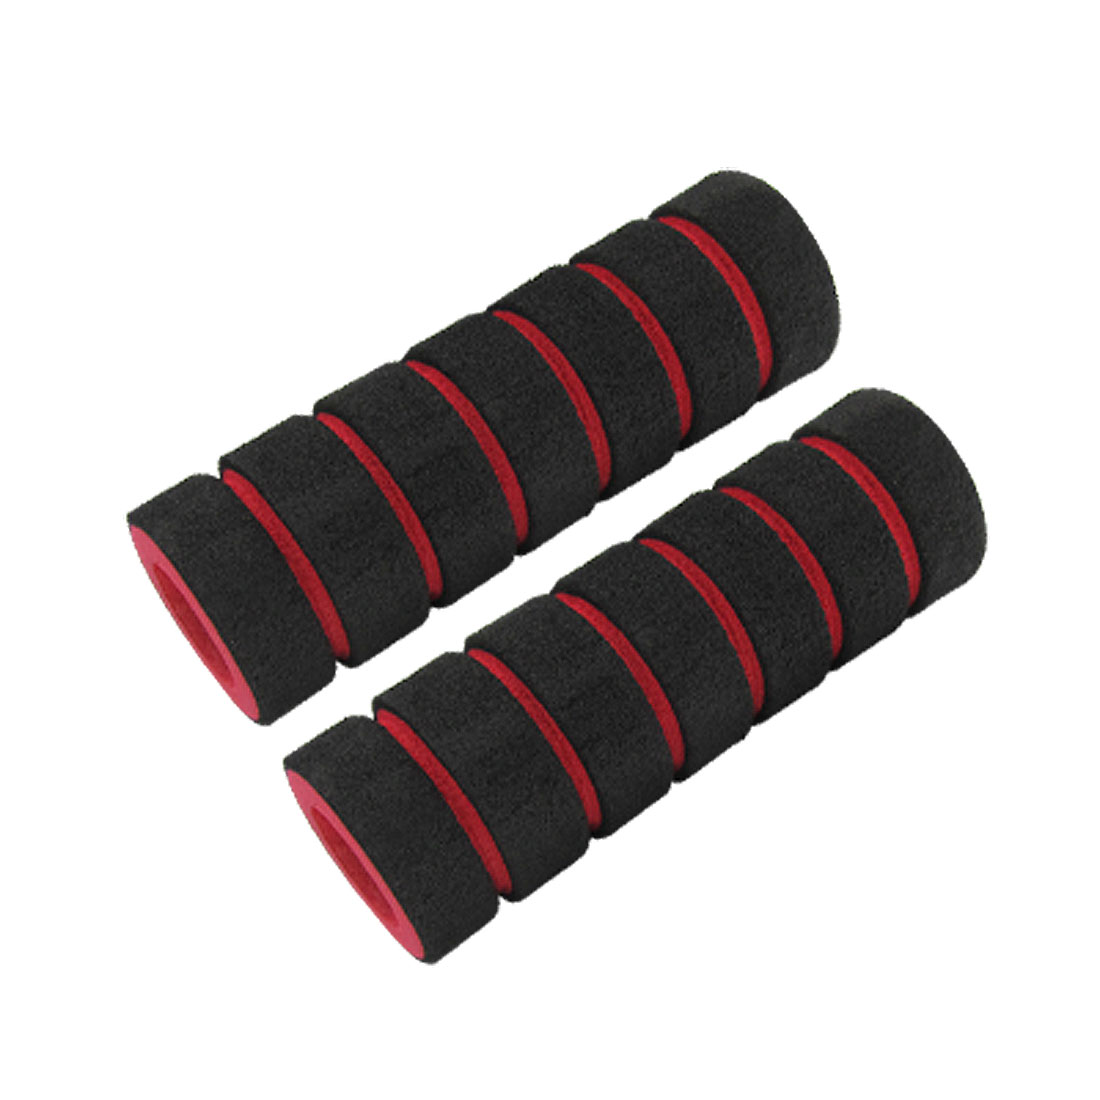 2 Pcs Bike Bicycle Handlebar Grips Antislip Sponge Cover Universal